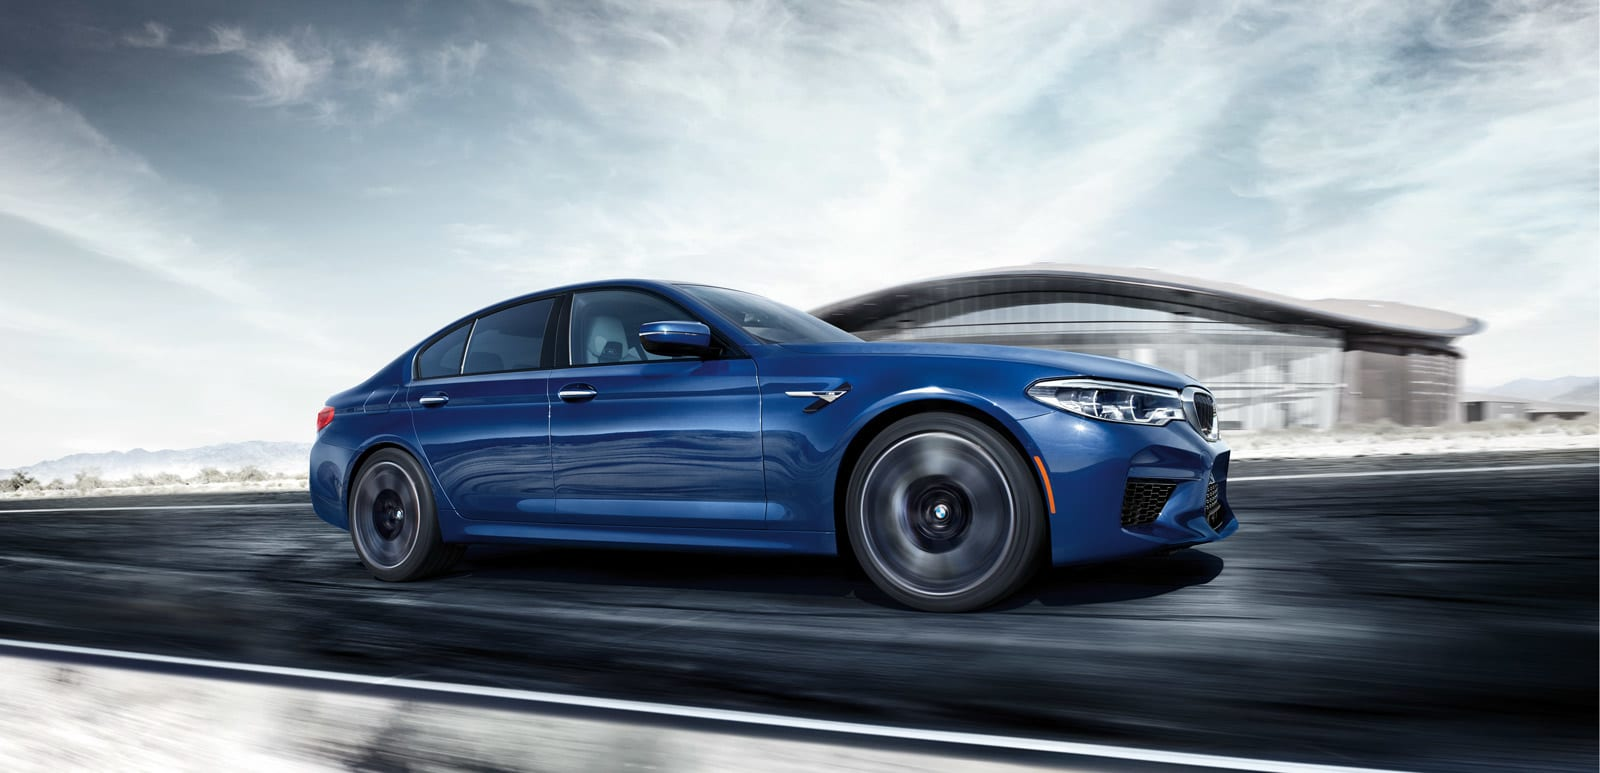 Performance of the 2018 BMW M5